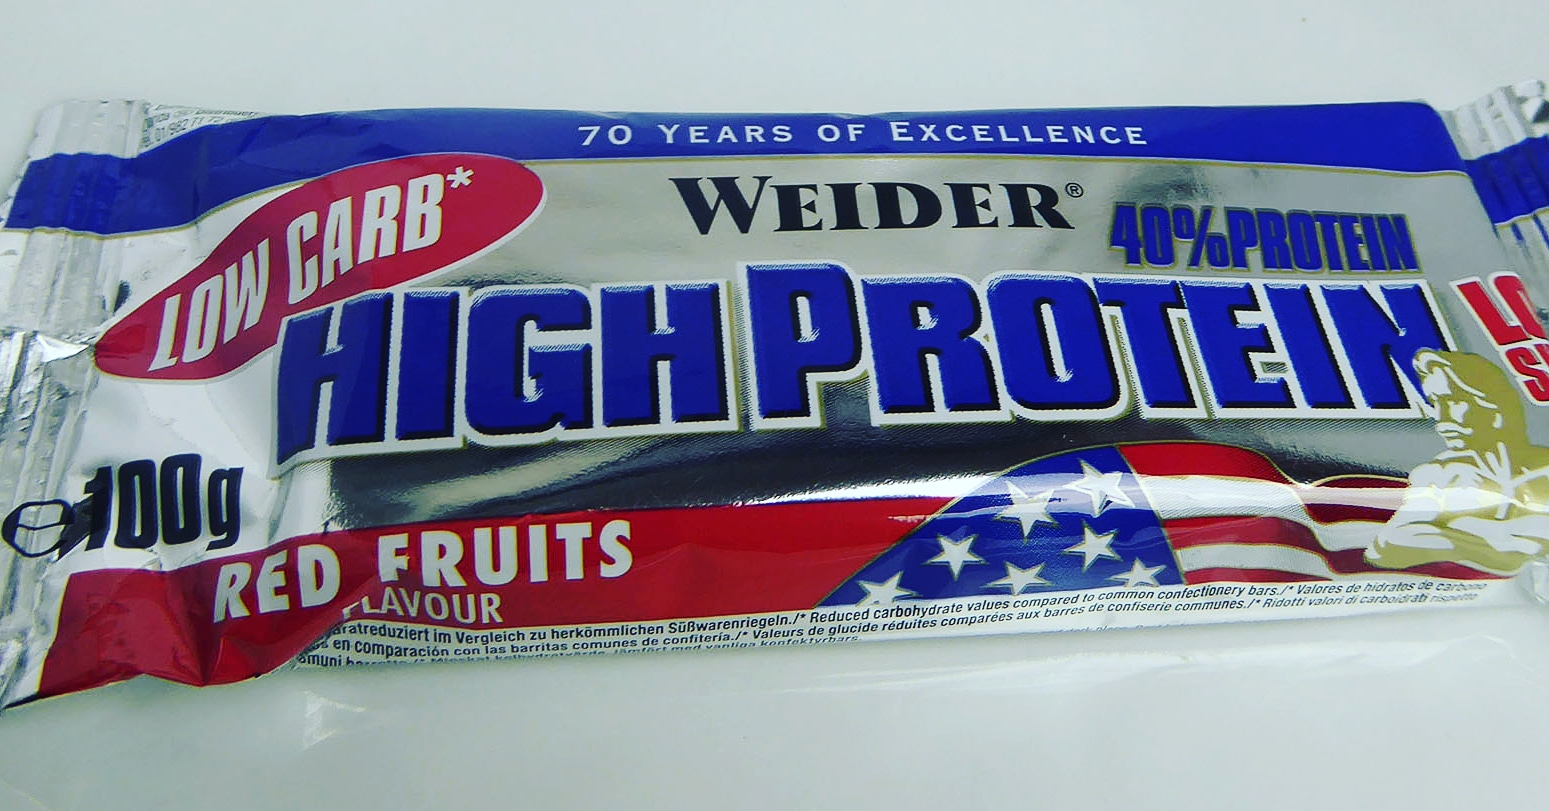 Weider High Protein Bar Low Sugar Red Fruits